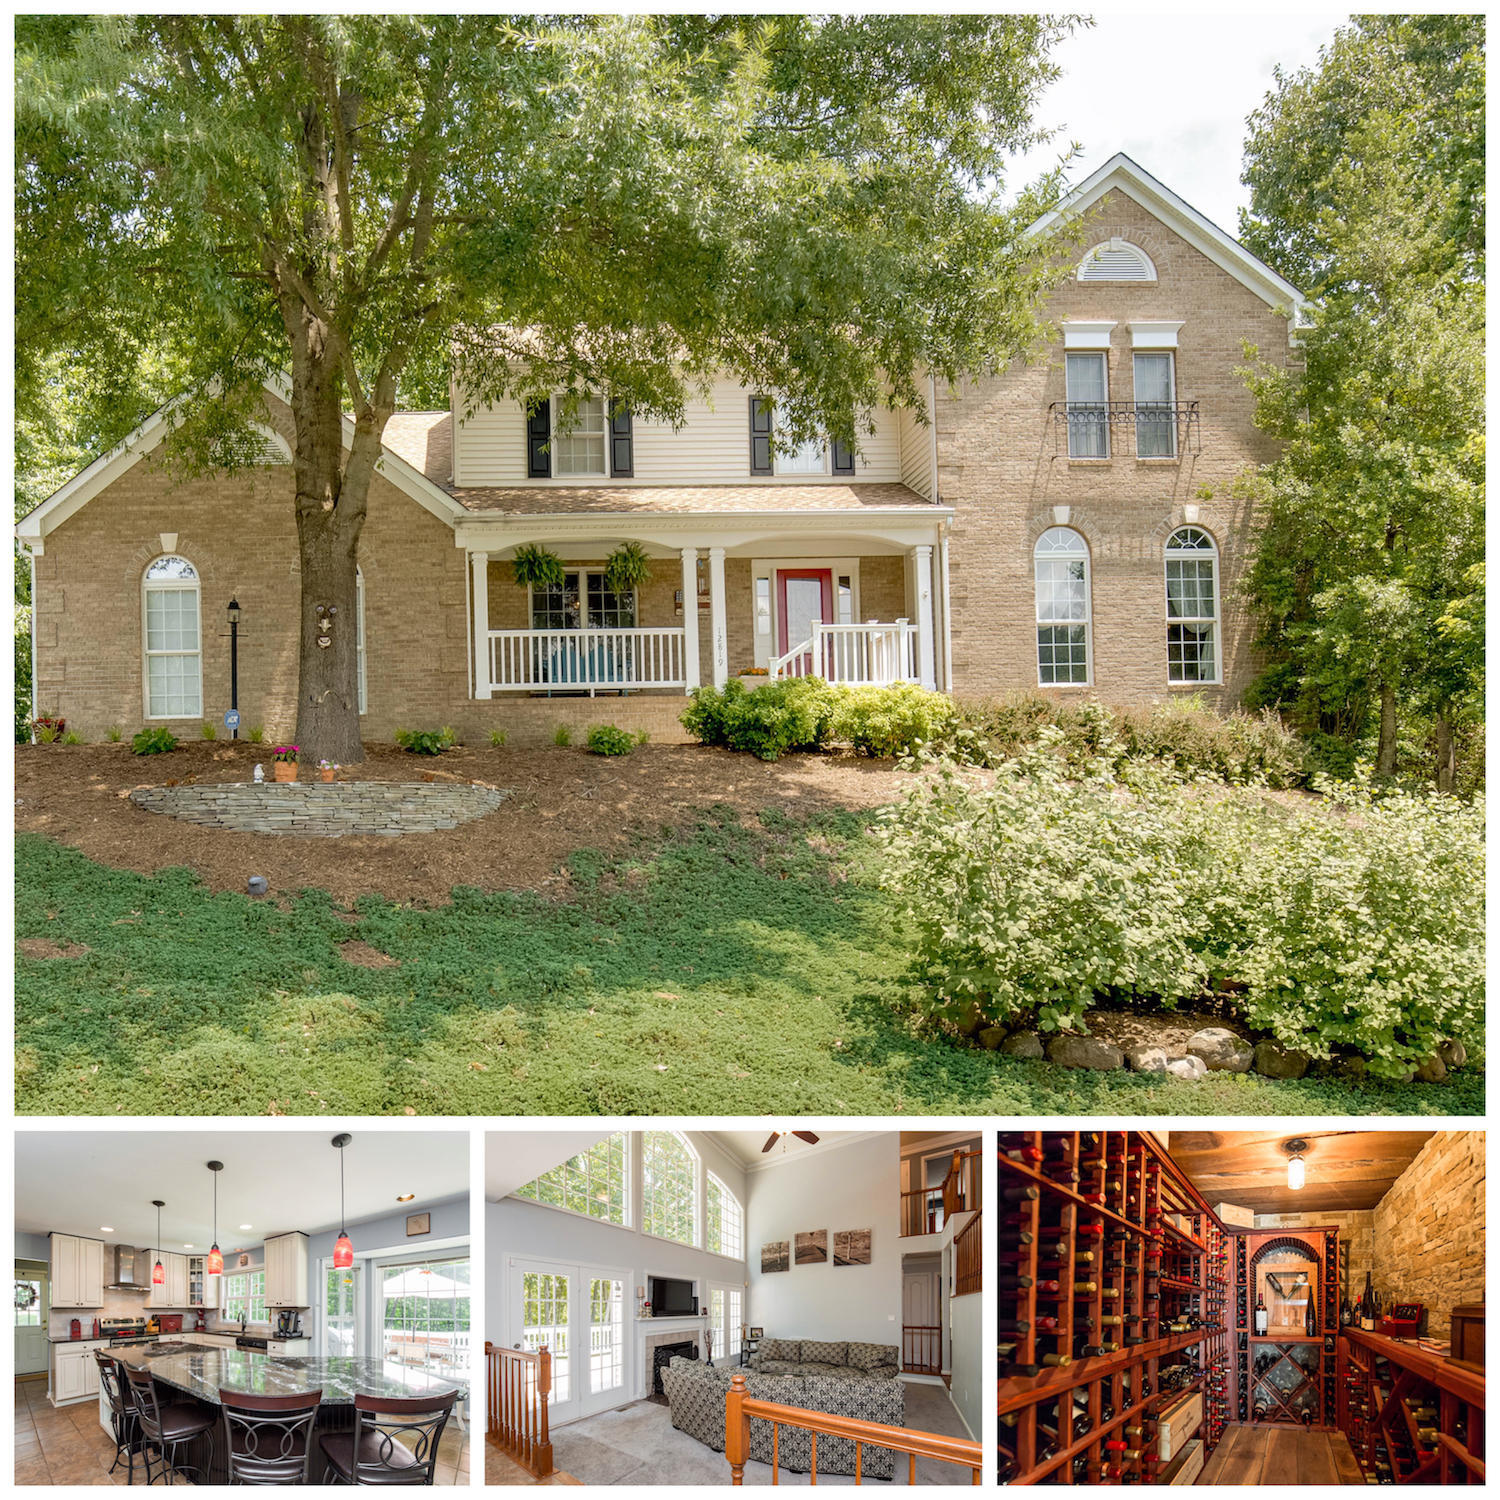 Home of the Week: 3 level home with wine cellar